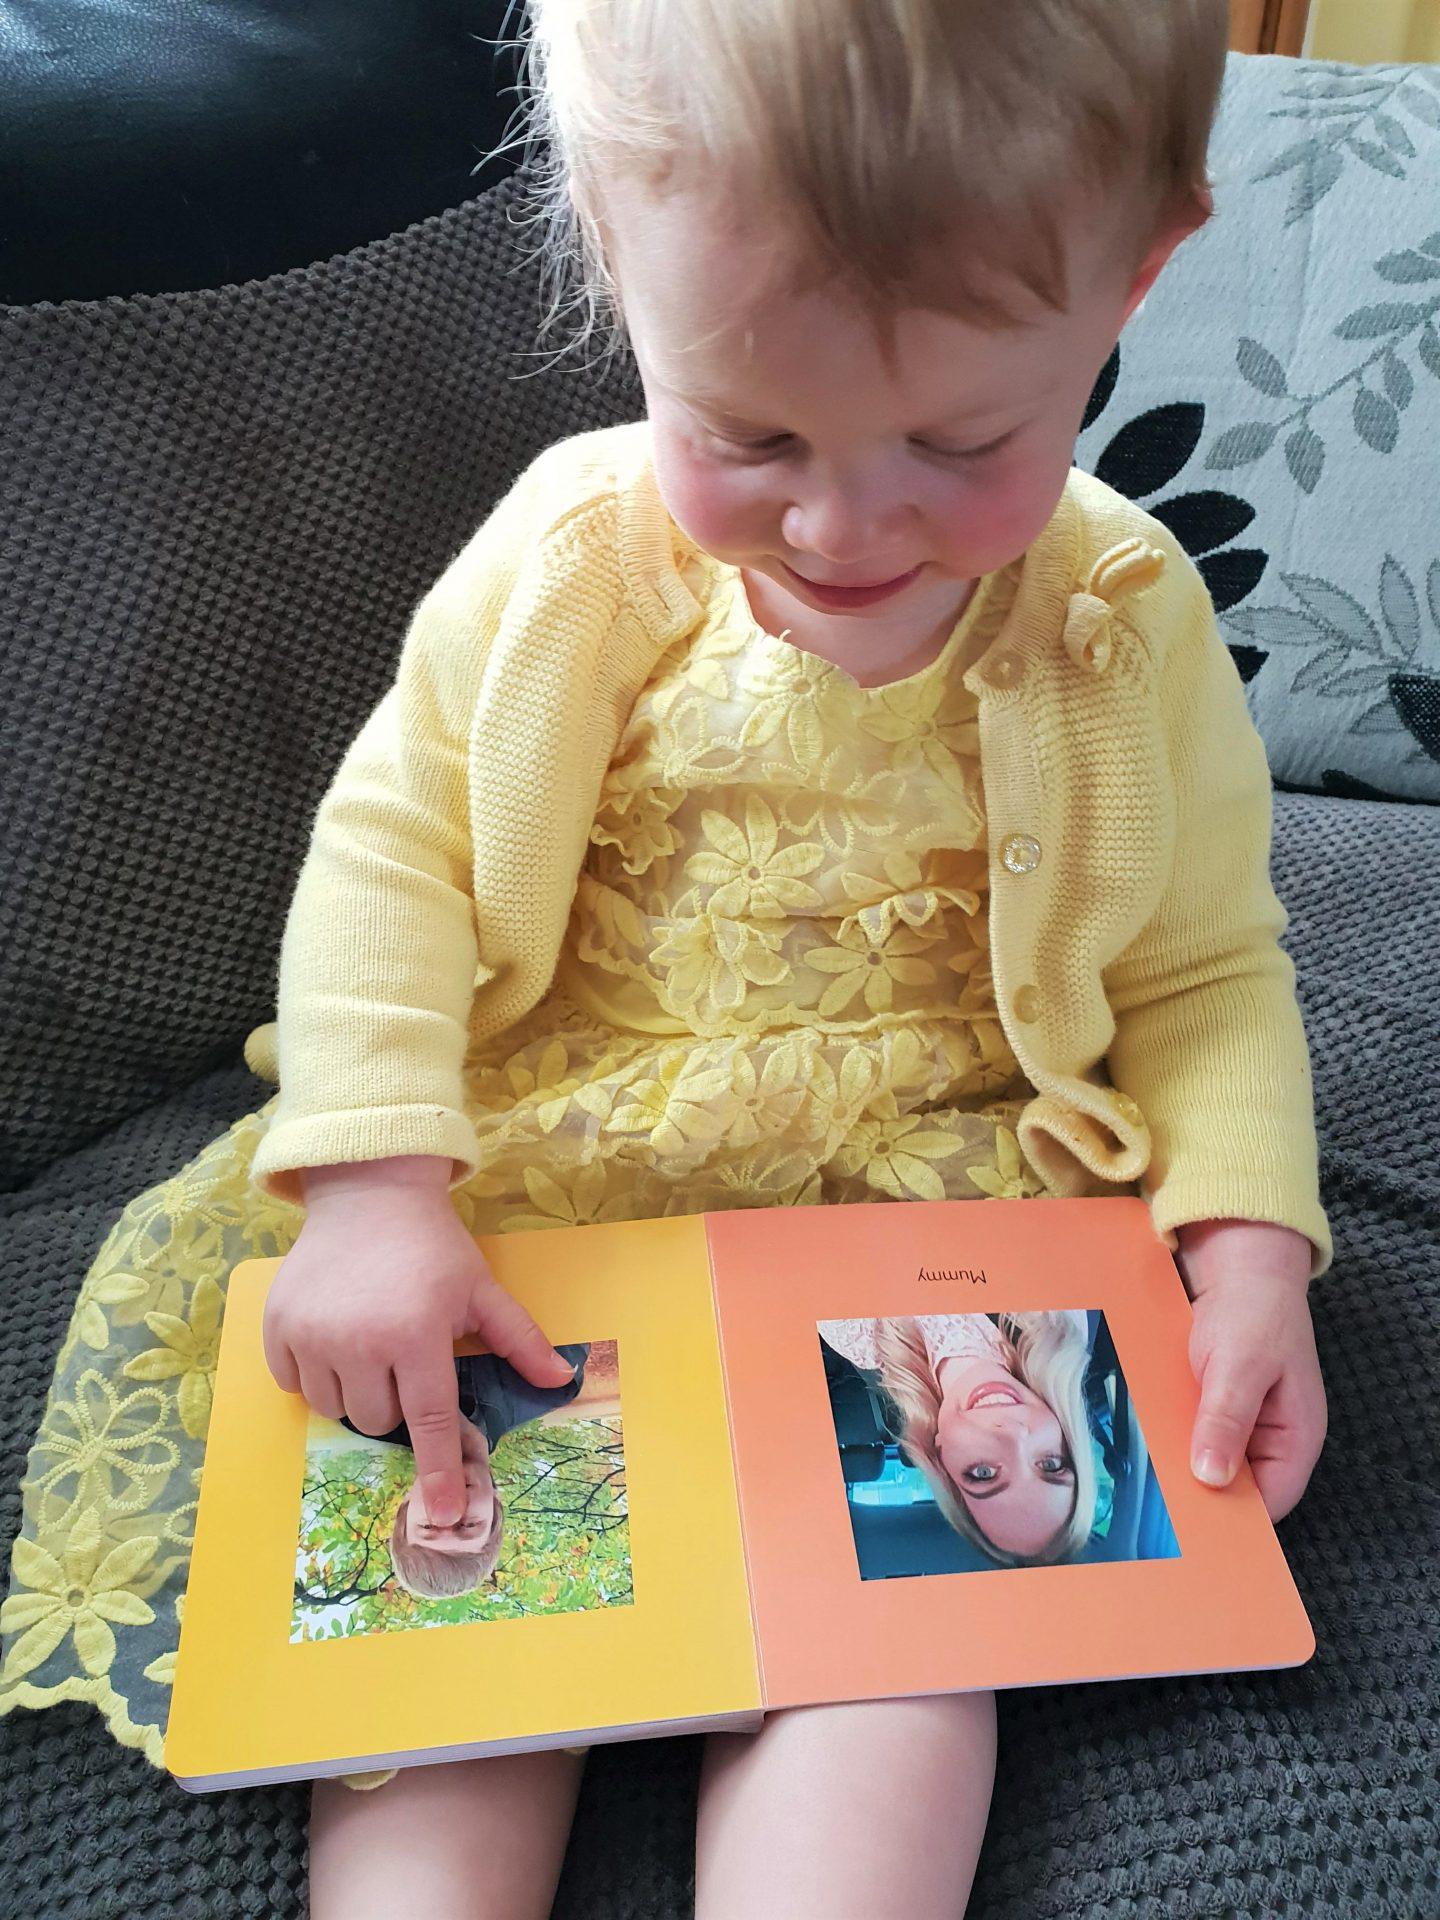 Autumn looking at parents in first photo book